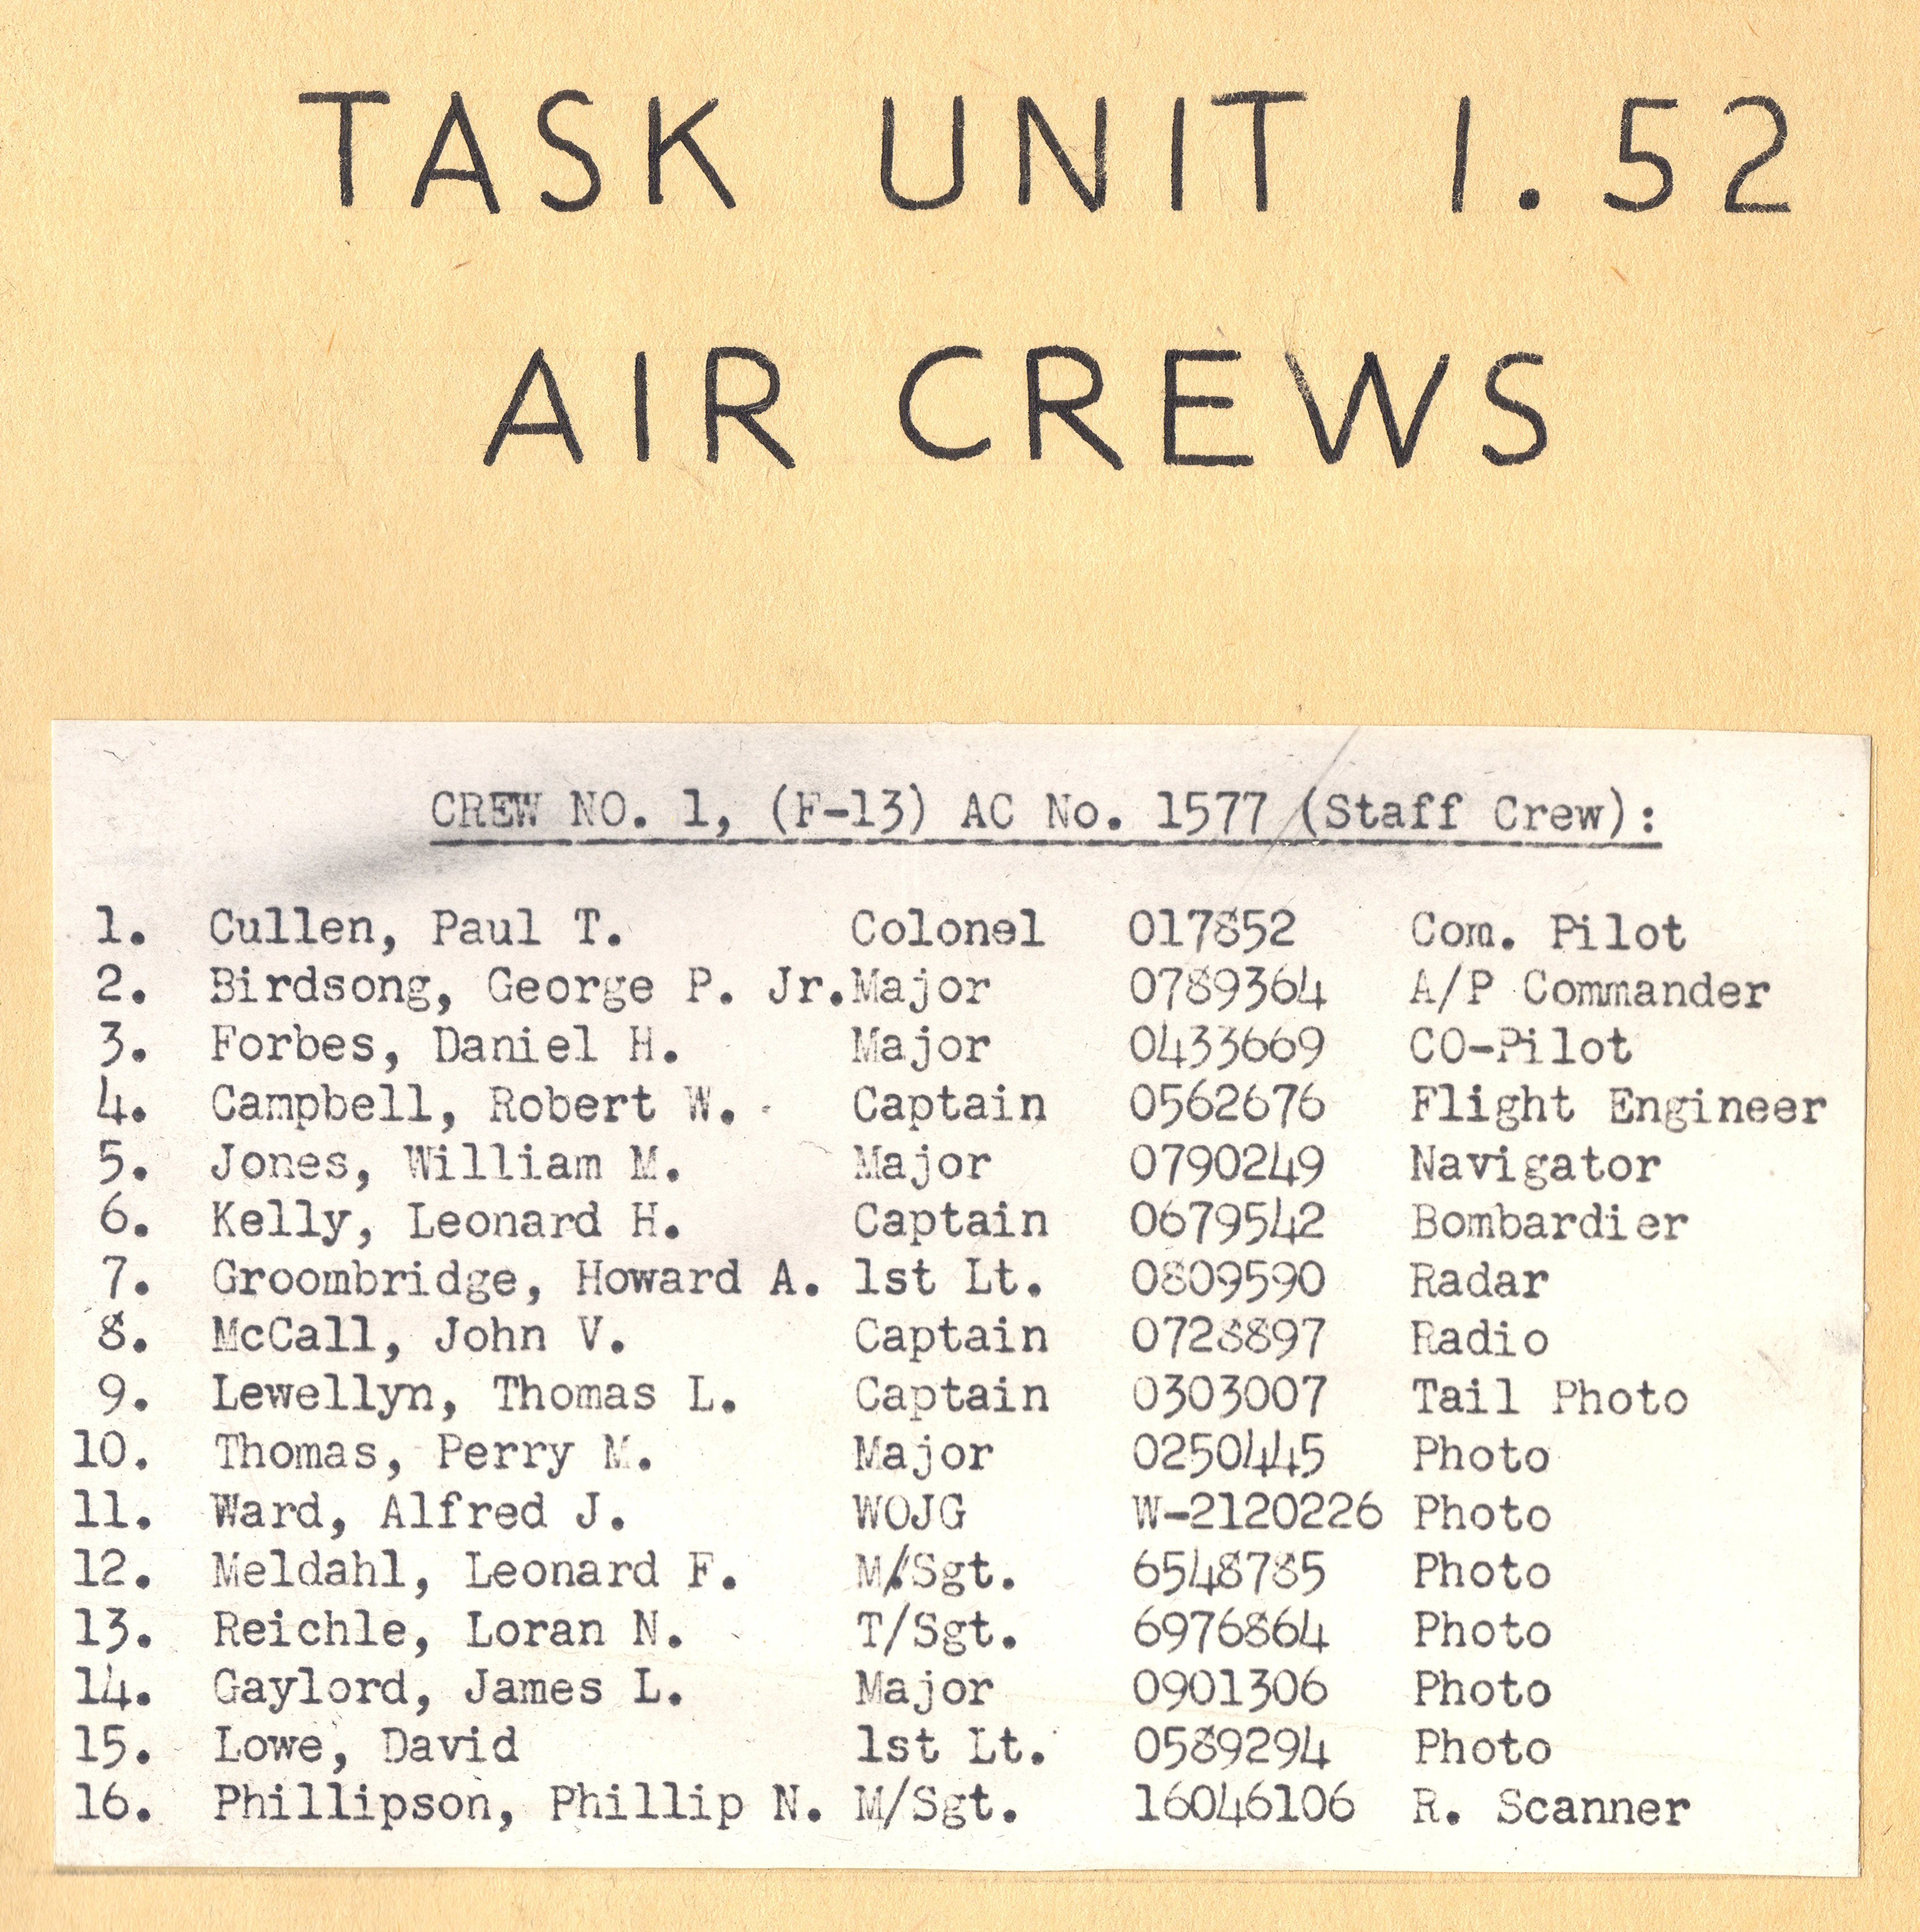 Task Unit 1.52 Air Crew list of names, 1945-1946